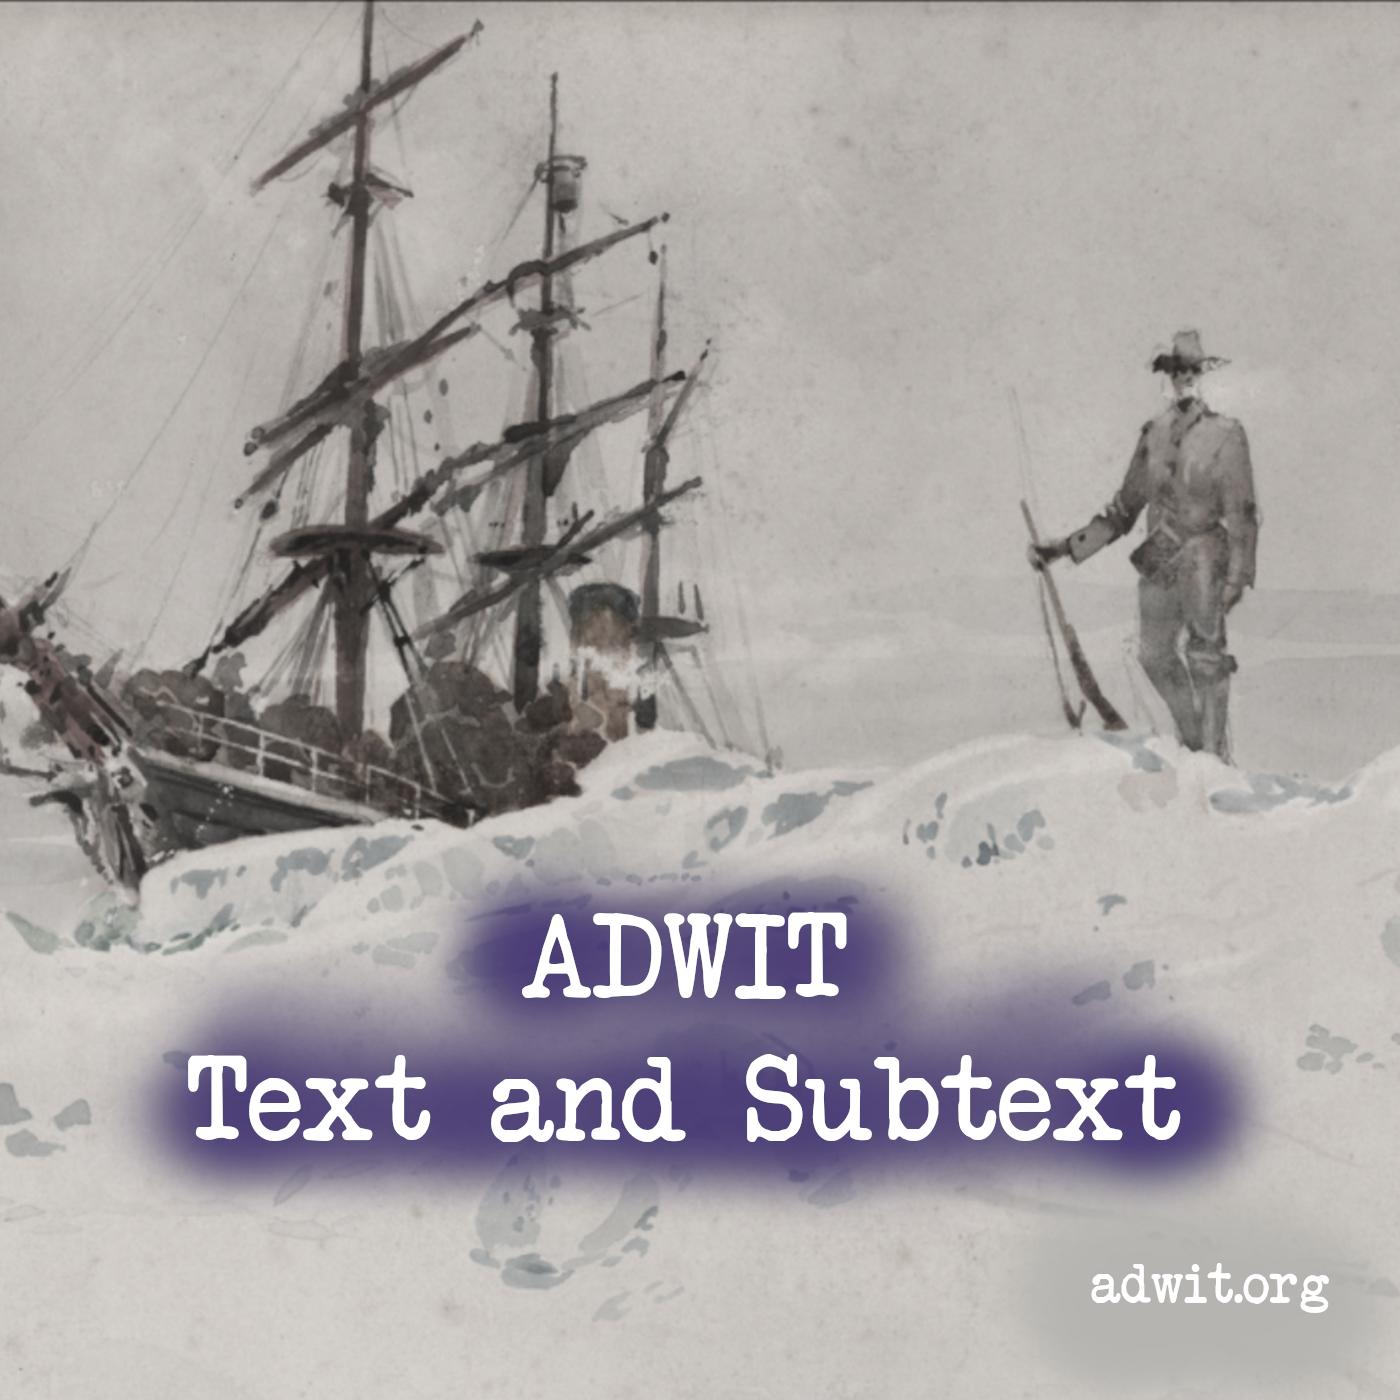 Background: A man wearing a cowboy hat and holding a rifle, stands on an iceberg, with a sailing vessel stuck in the ice in the background. Watercolor by R. W. Porter, 1901, from the Baldwin-Ziegler Polar Expedition. U.S. National Archives.